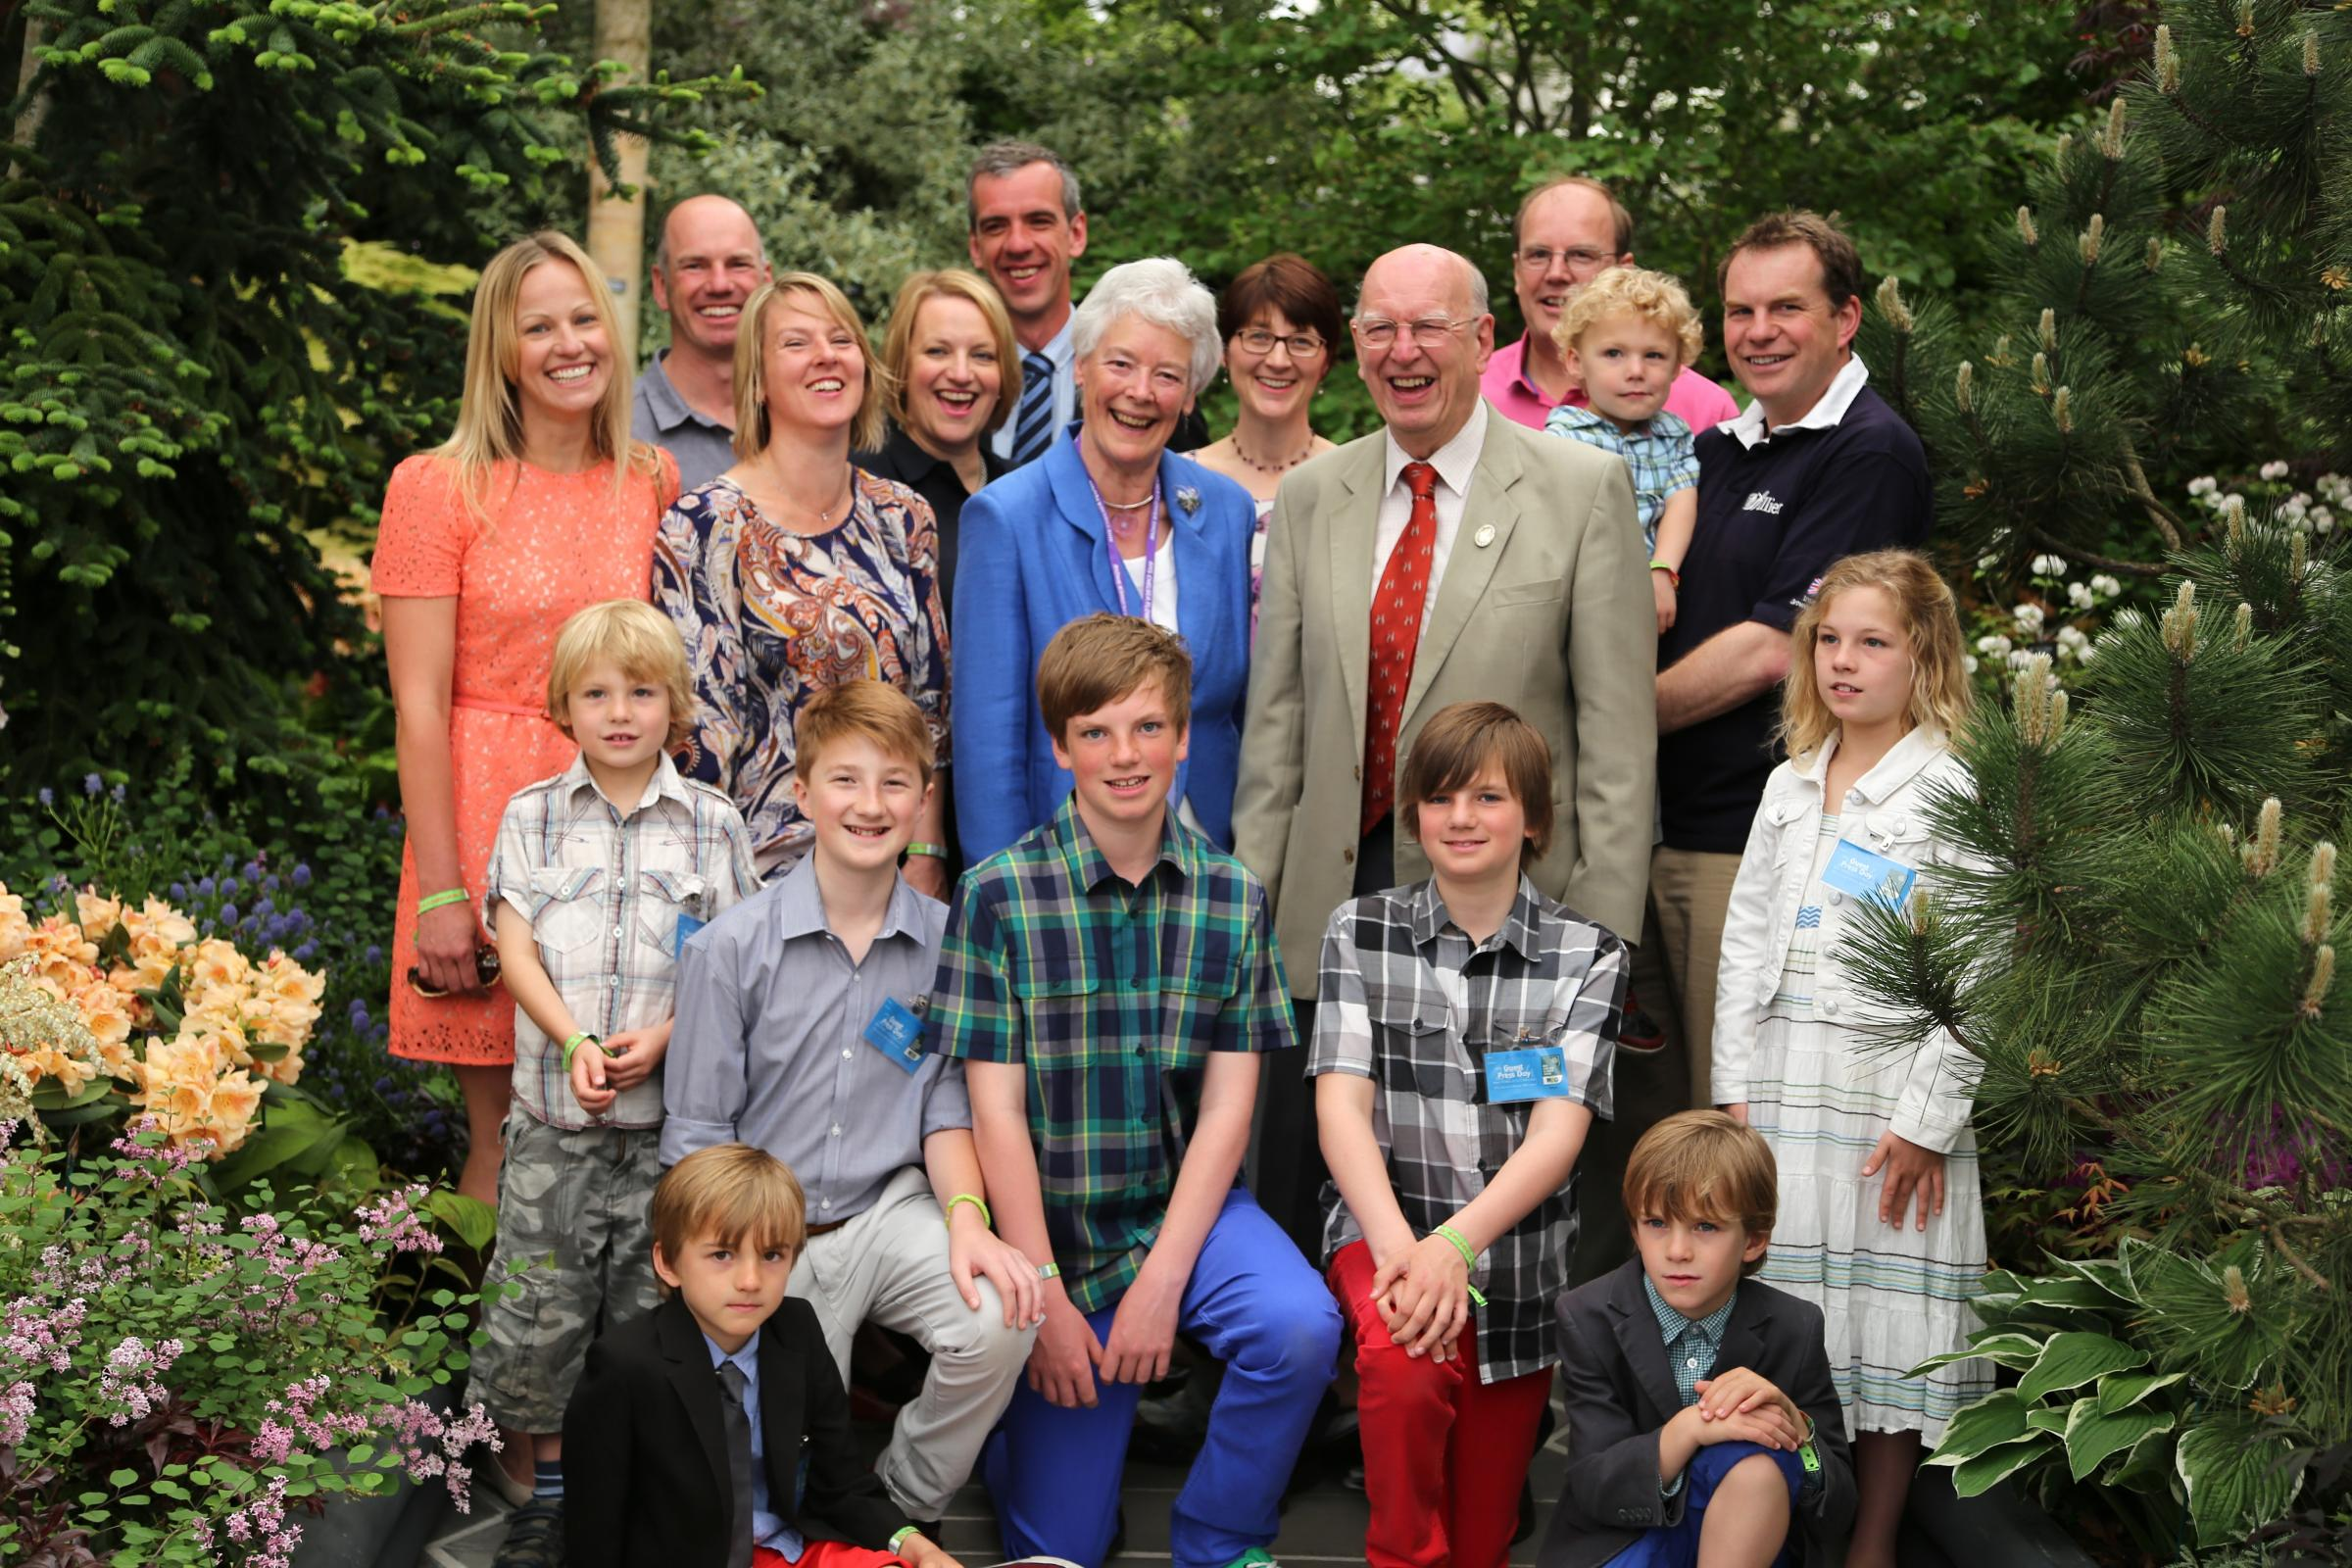 President of Hillier Nurseries, John Hillier, joined family on the Hillier Exhibit for a group photograph to celebrate the 150th anniversary